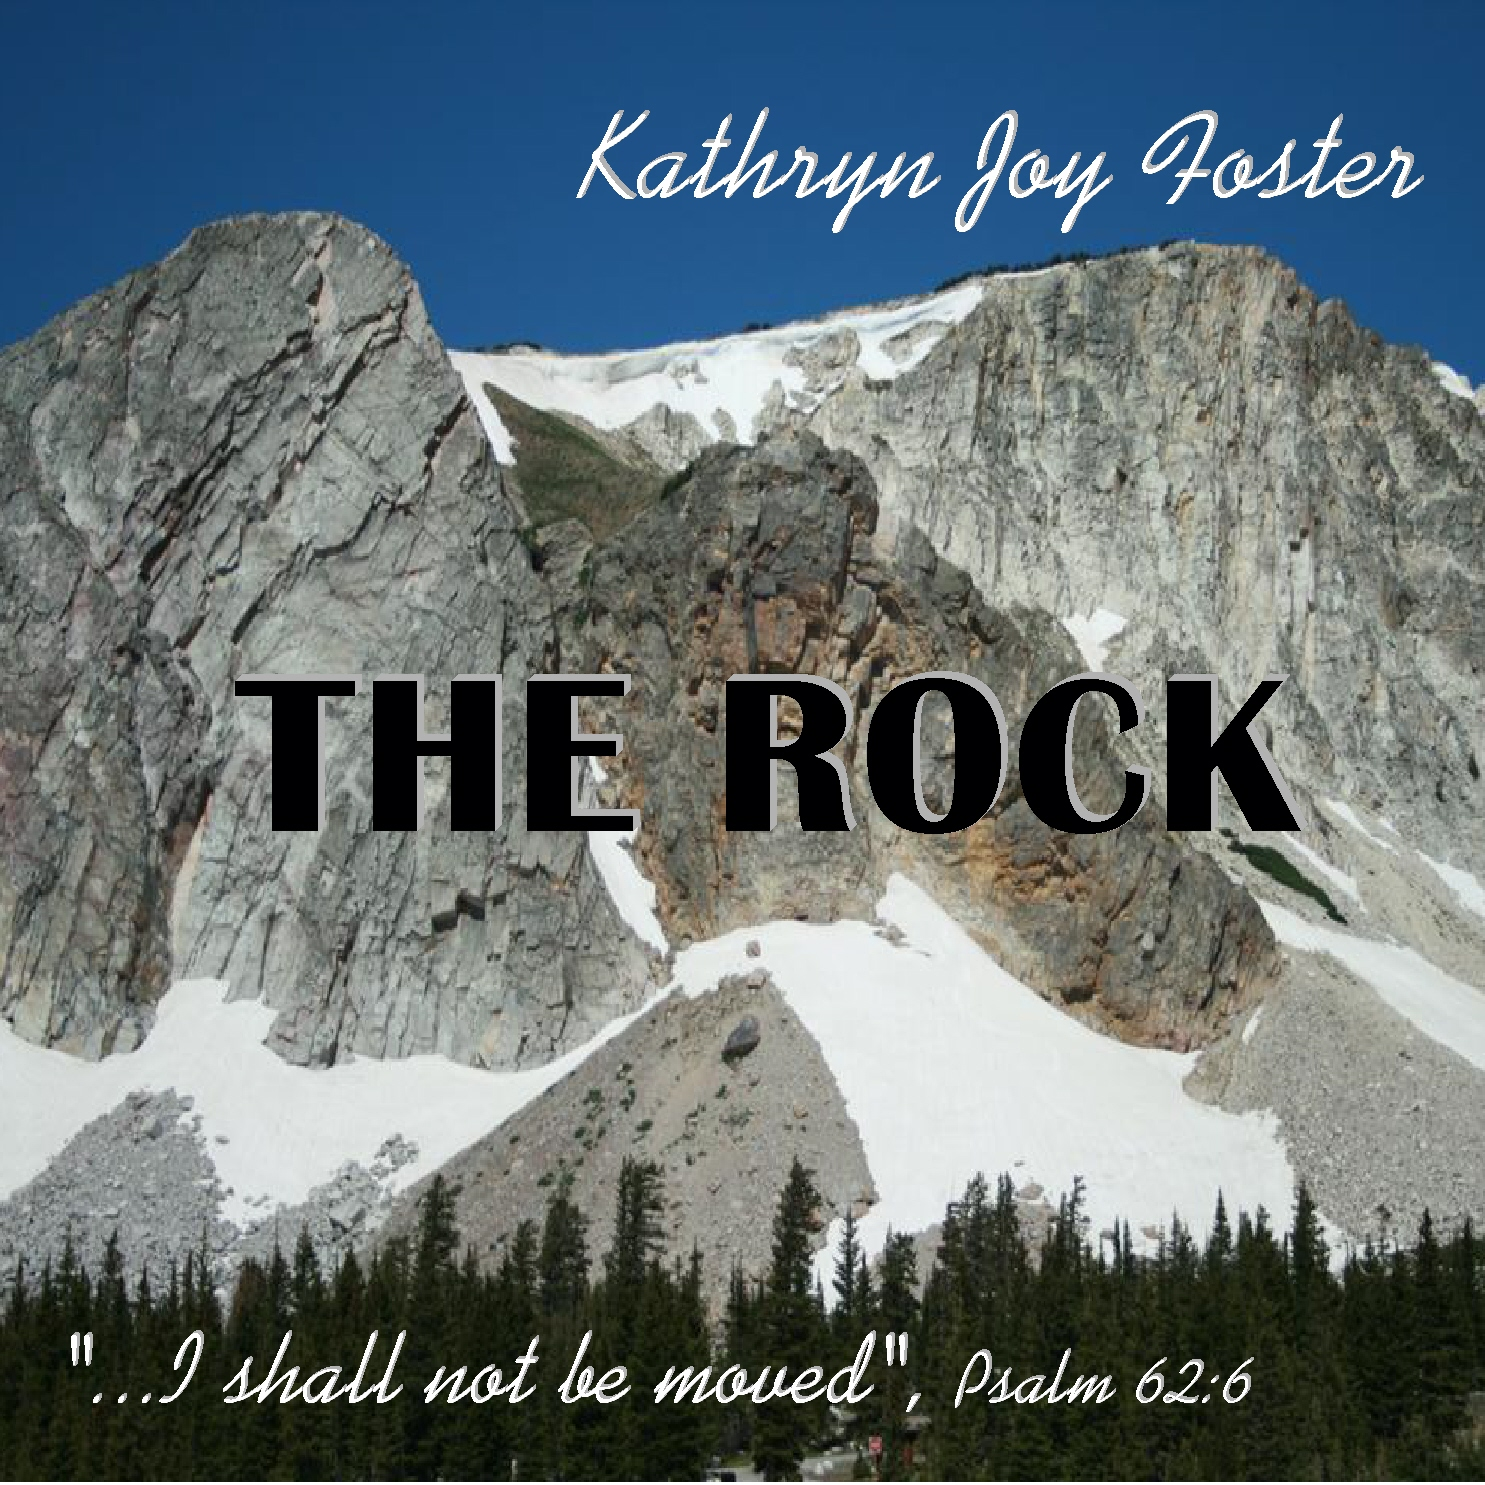 The Rock CD front6